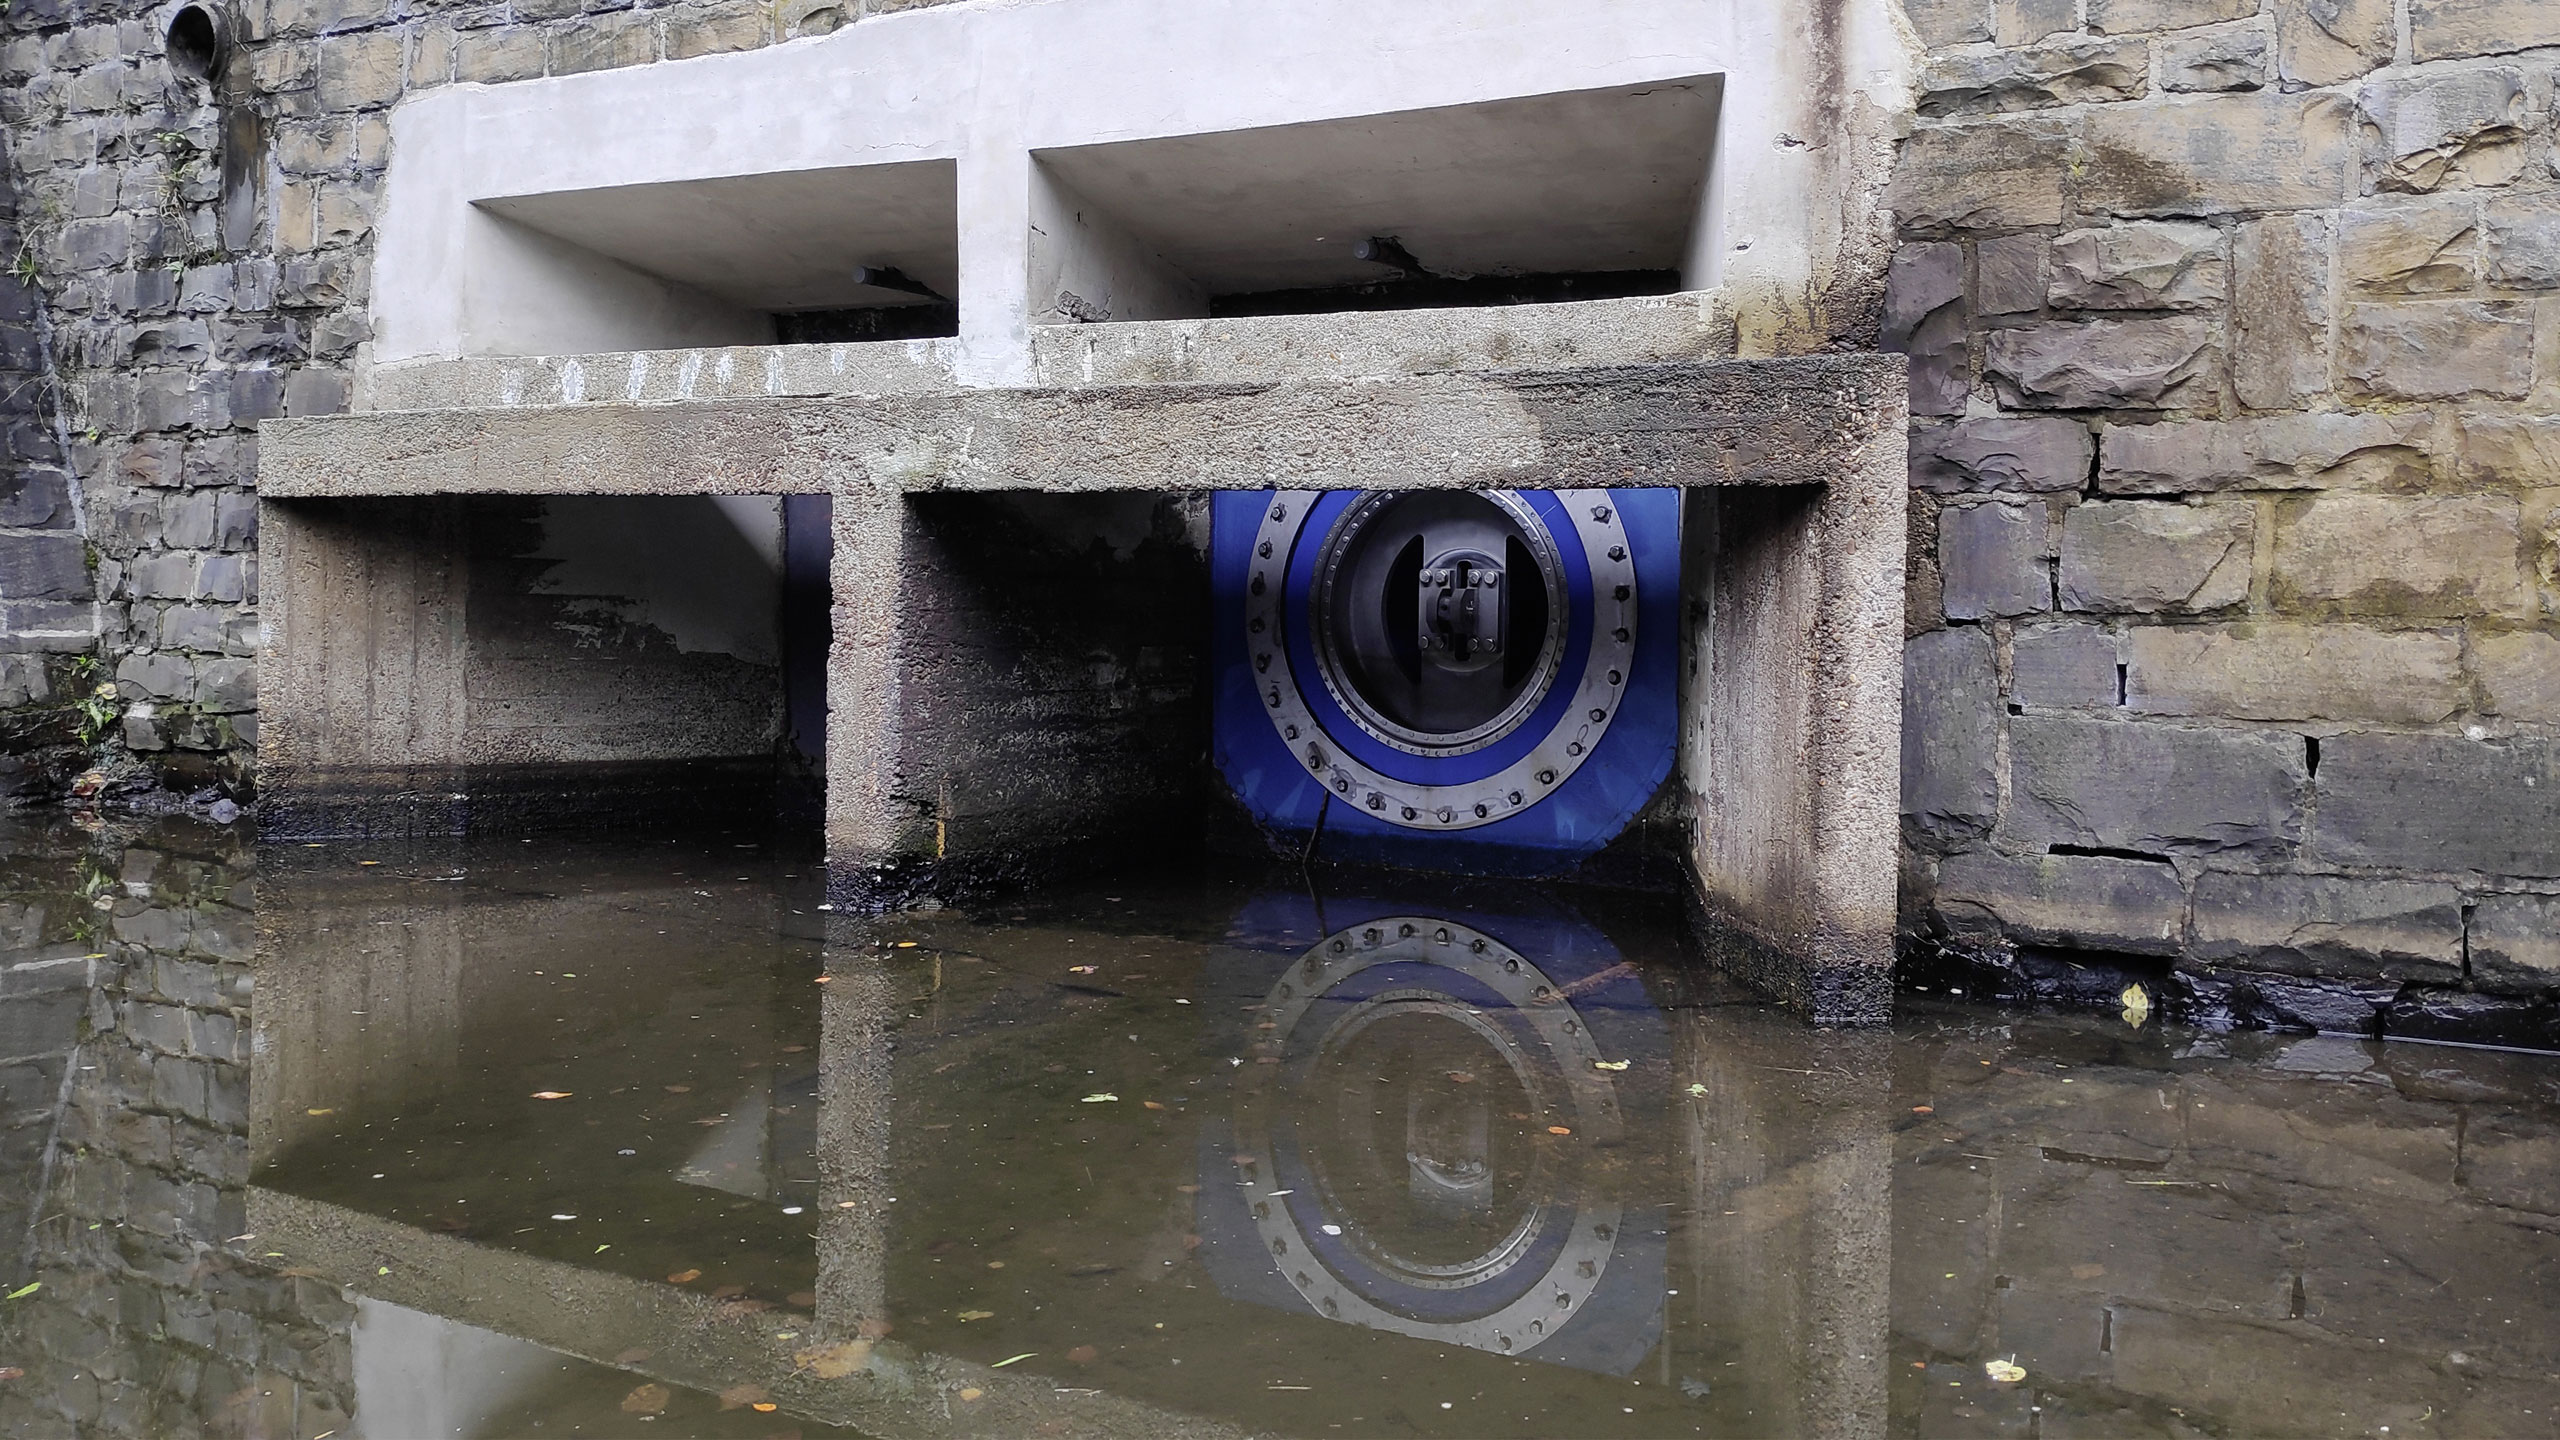 AVK needle valve for base drainage in dam, installed in Germany